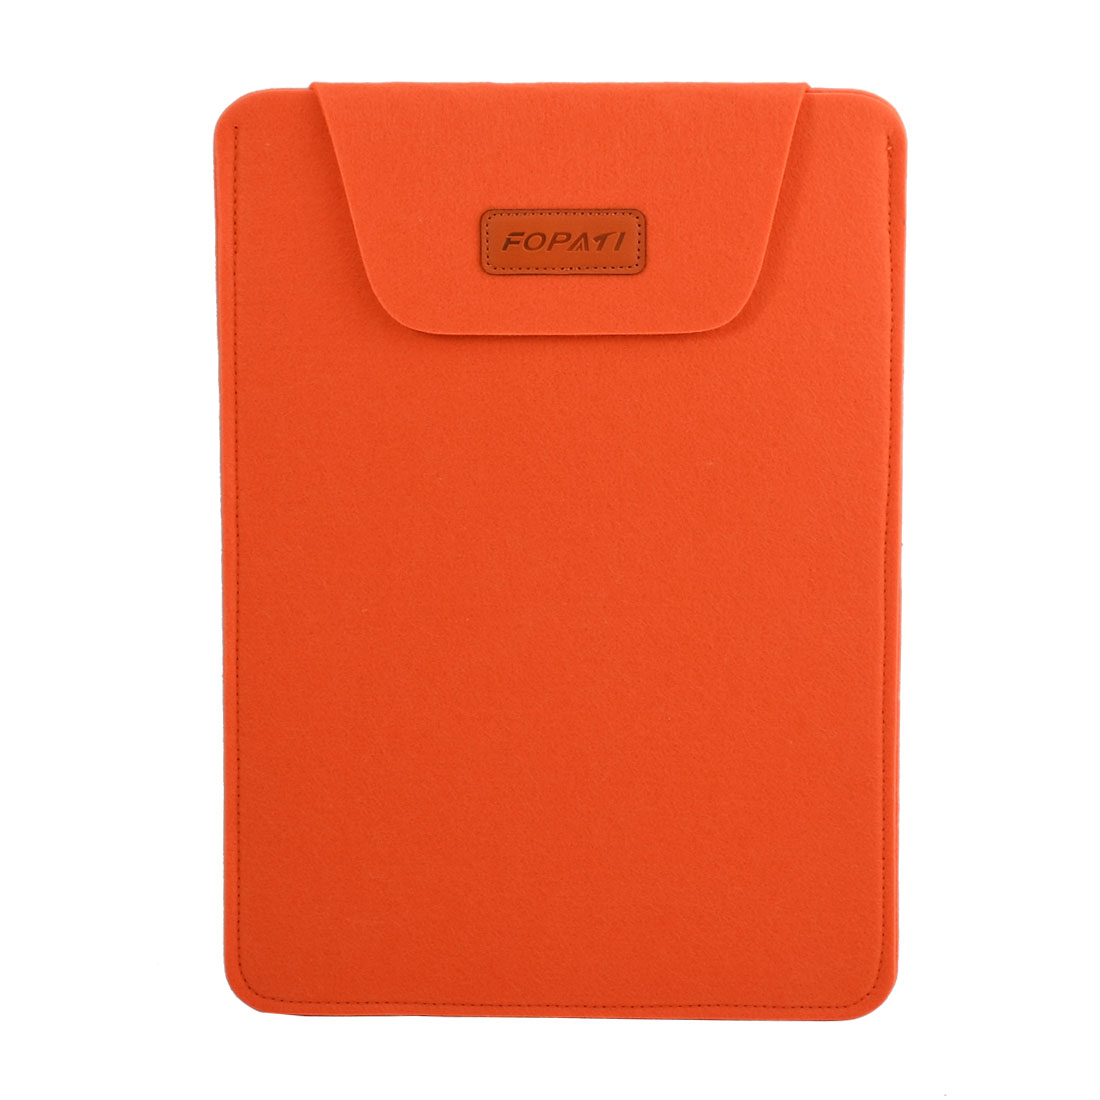 Office PC Wool Felt Universal Protective Shell Notebook Sleeve Case Orange for 14 Inch Laptop